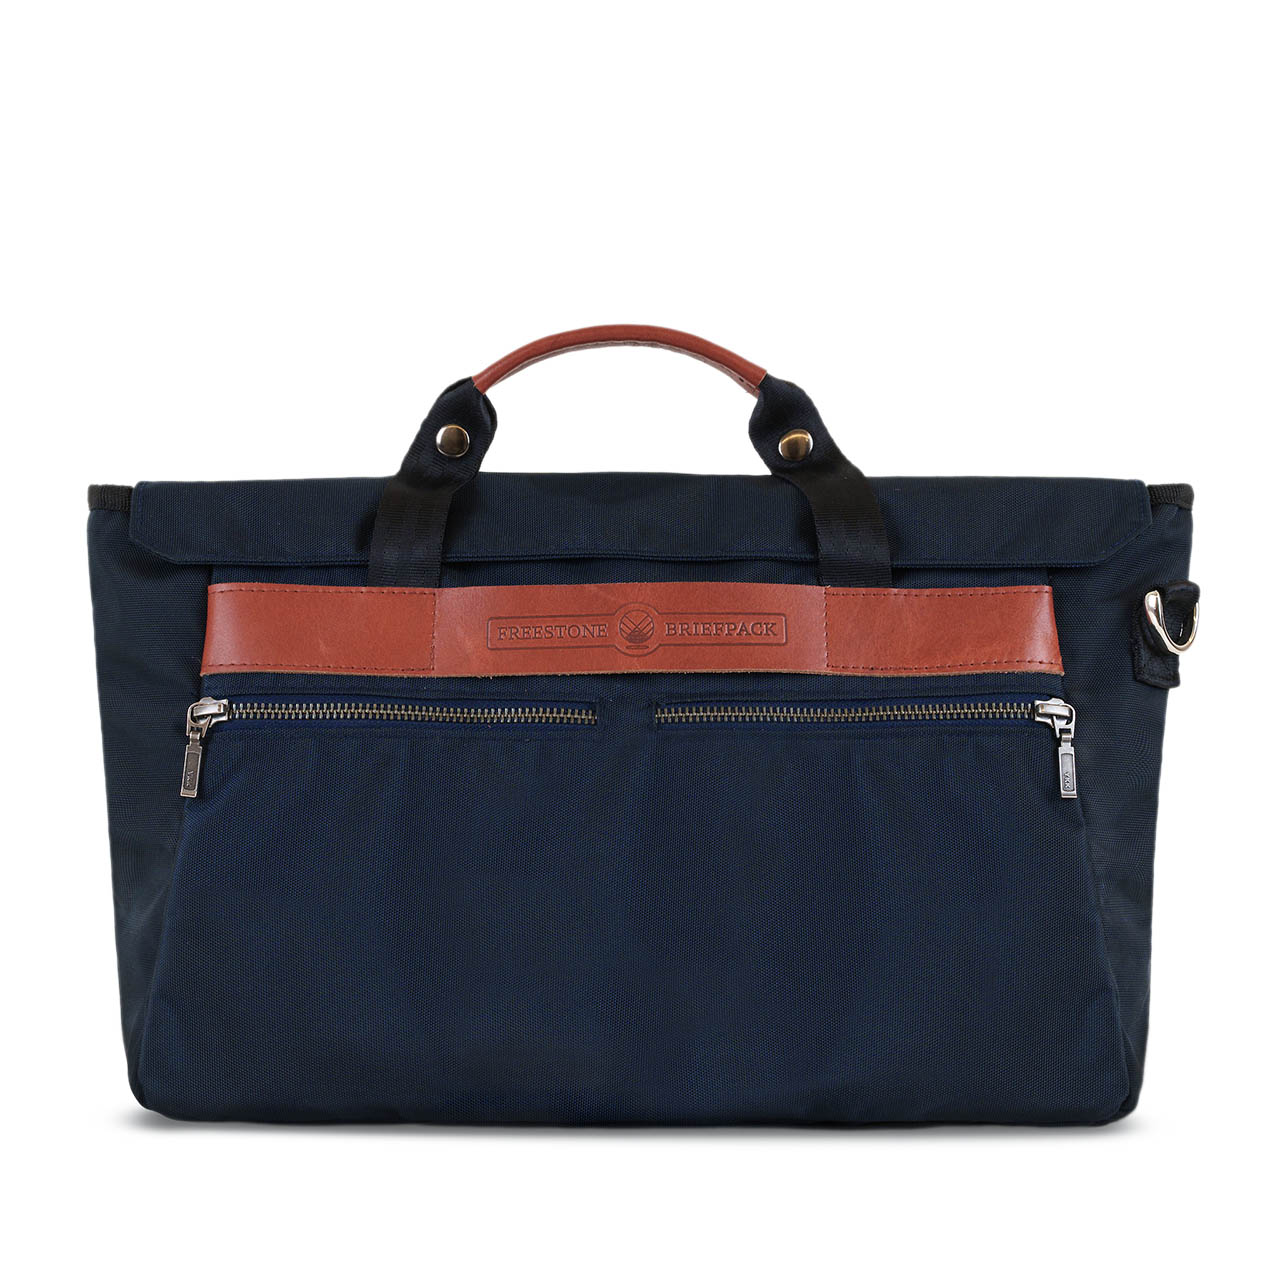 Freestone Briefpack (briefcase)